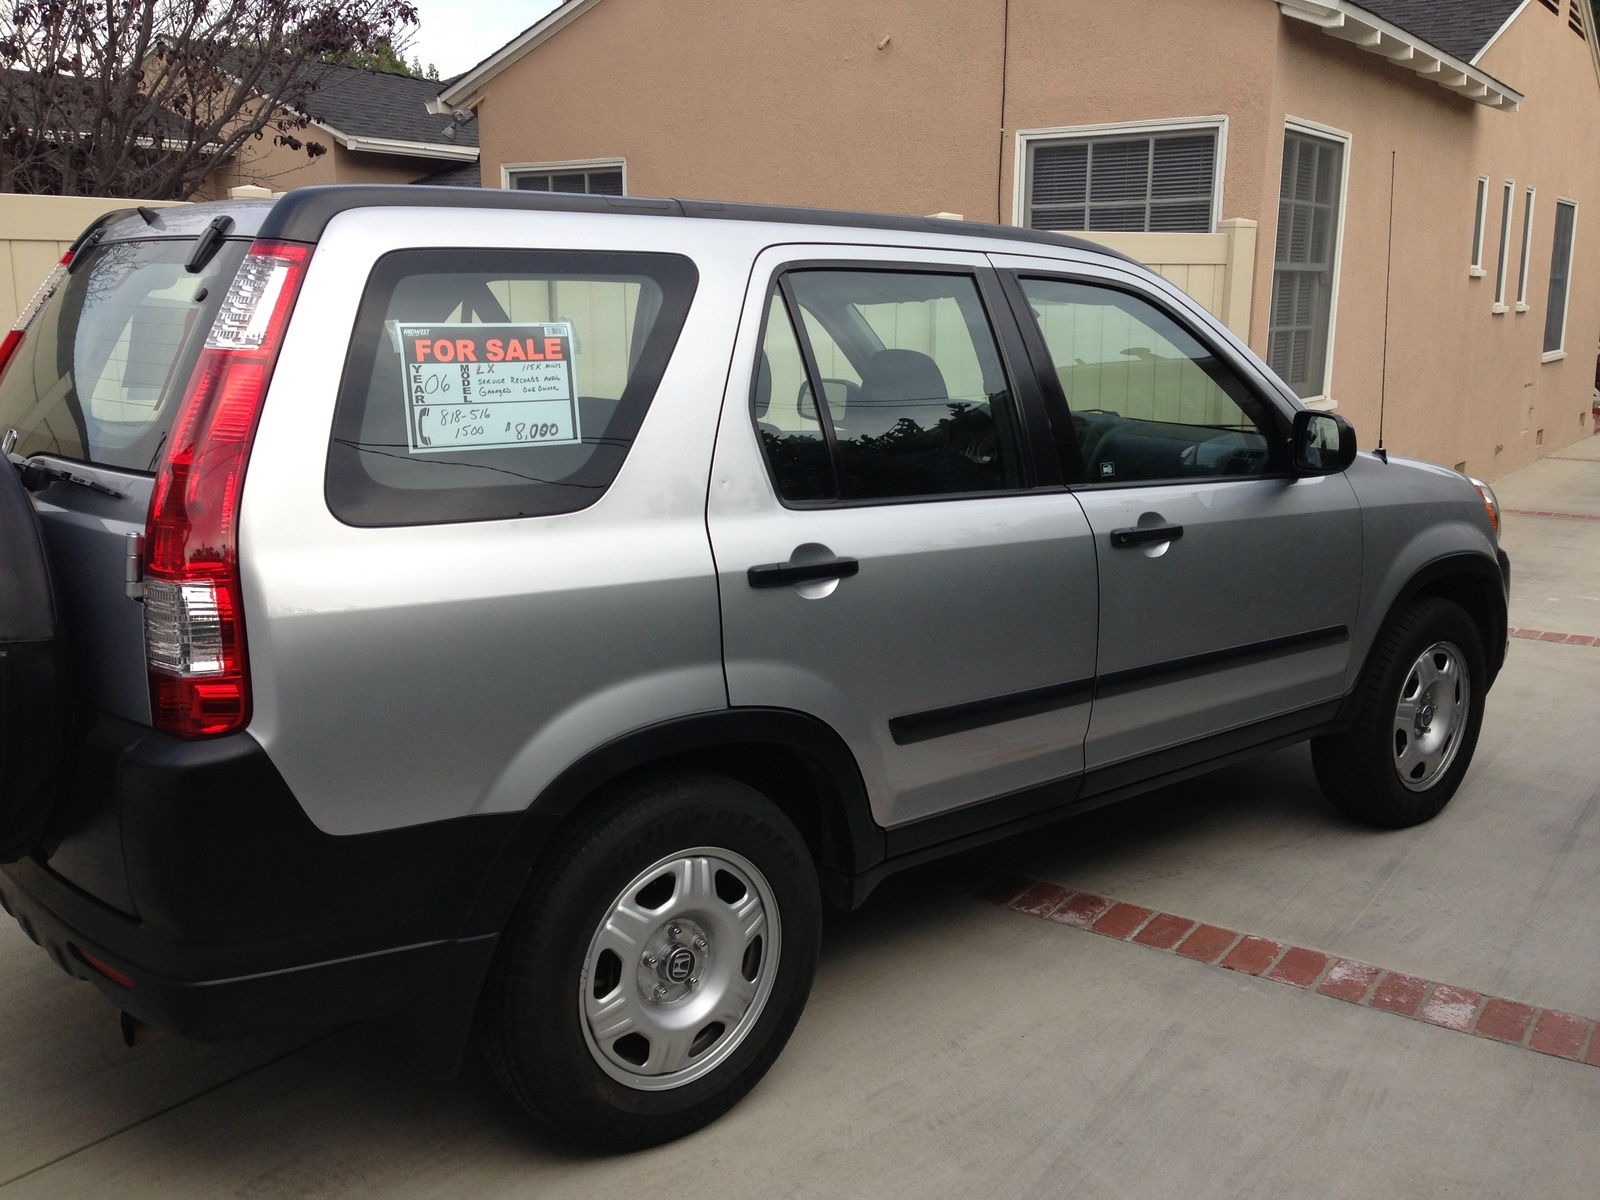 Picture of 2006 honda cr v lx exterior